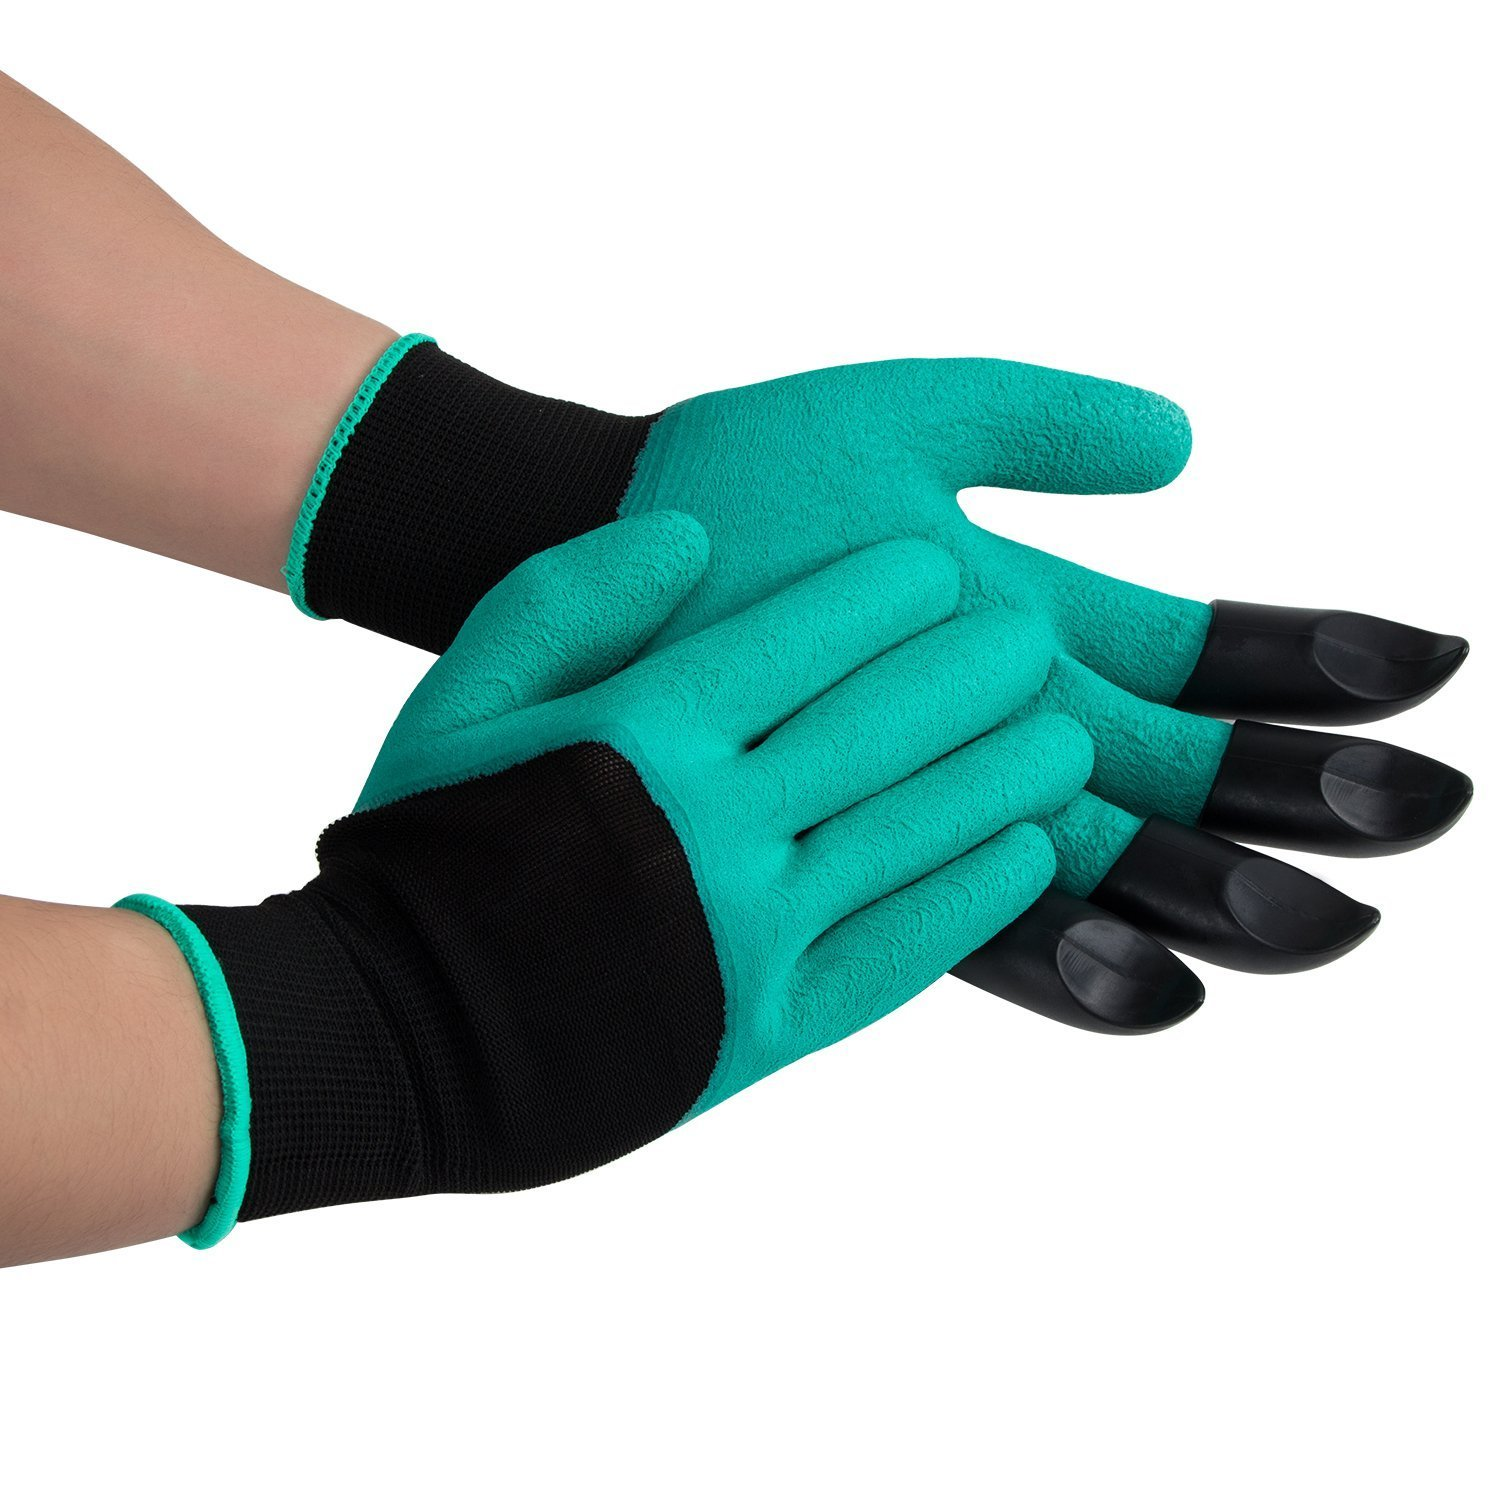 Garden Digging Gloves Claw Tools - QIYAT Garden Genie Gloves with Fingertips Uniex Claws on Left Hand Quick Easy Dig Plant Safe for Pruning - As Seen On TV